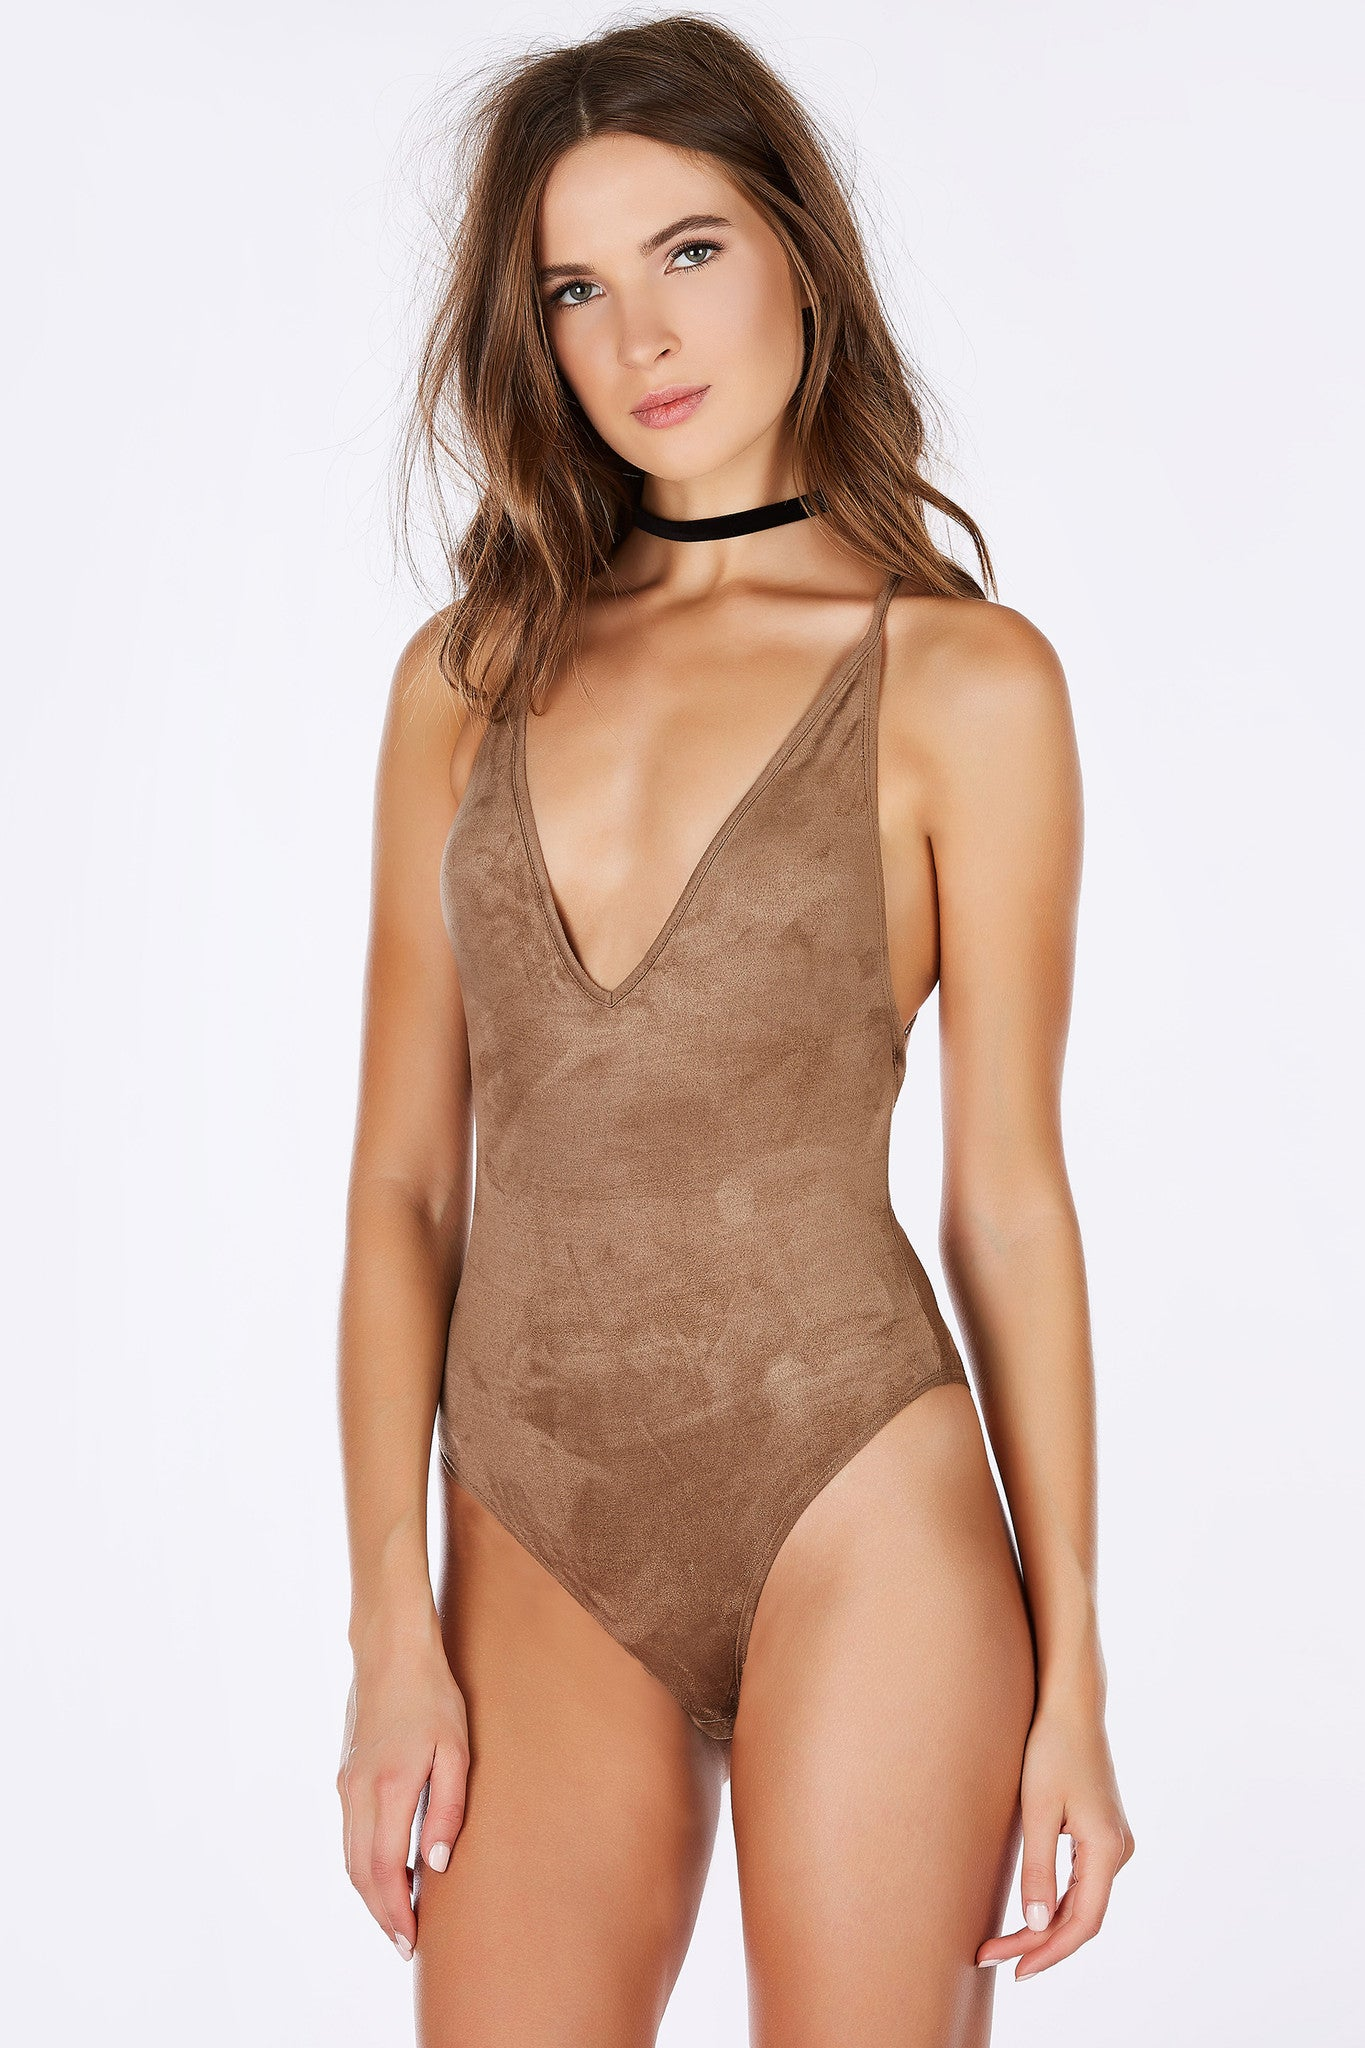 A sexy V-neck bodysuit with a chic suede finish. Stretchy material with an amazing fit. Adjustable shoulder straps that criss crosses in the open back. Pair with skinny jeans with ankle strap pumps for a seductive evening look.